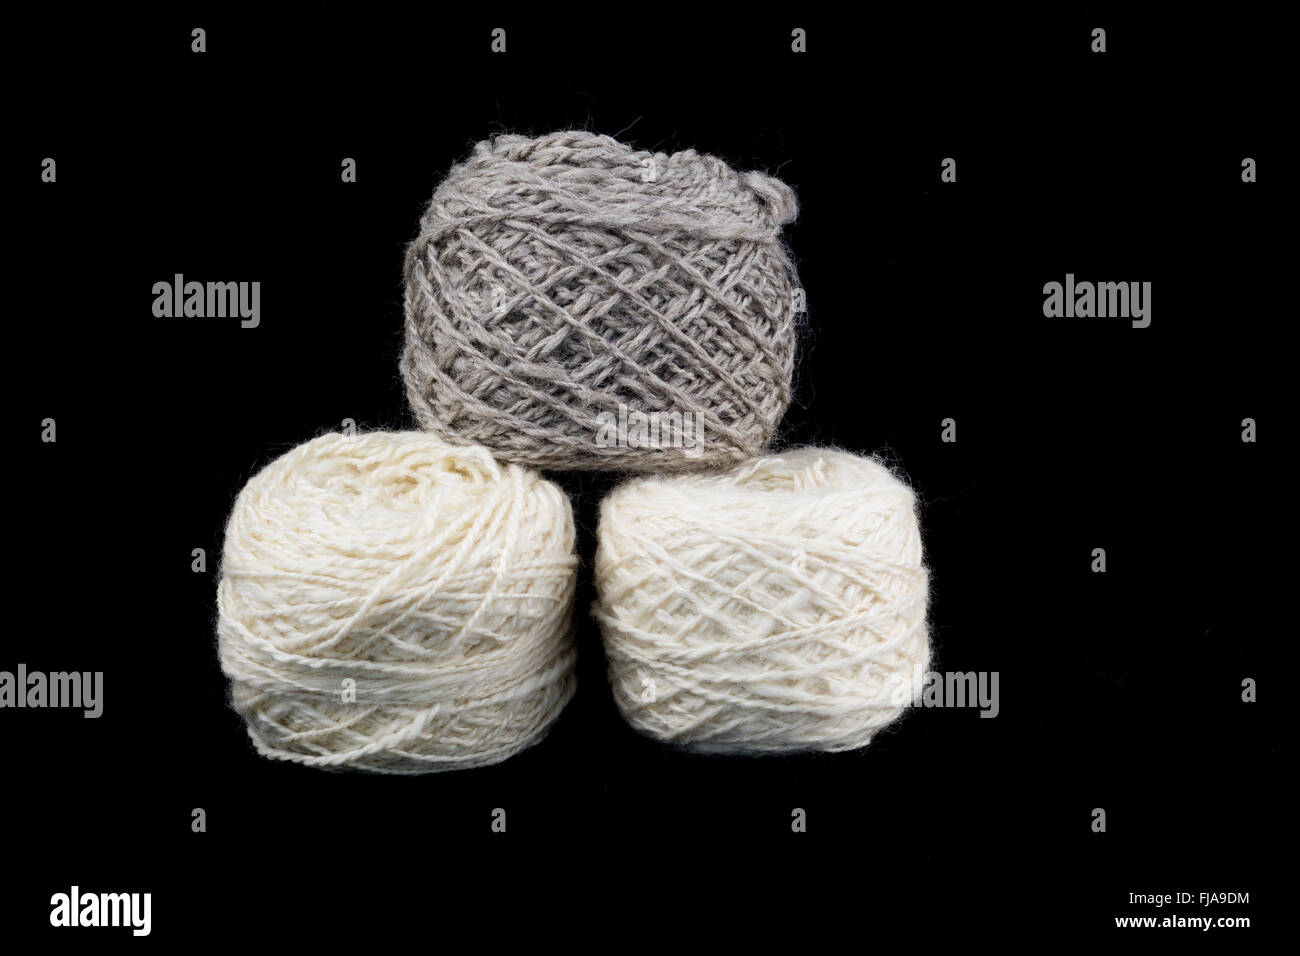 Three balls of wool on a black background - Stock Image